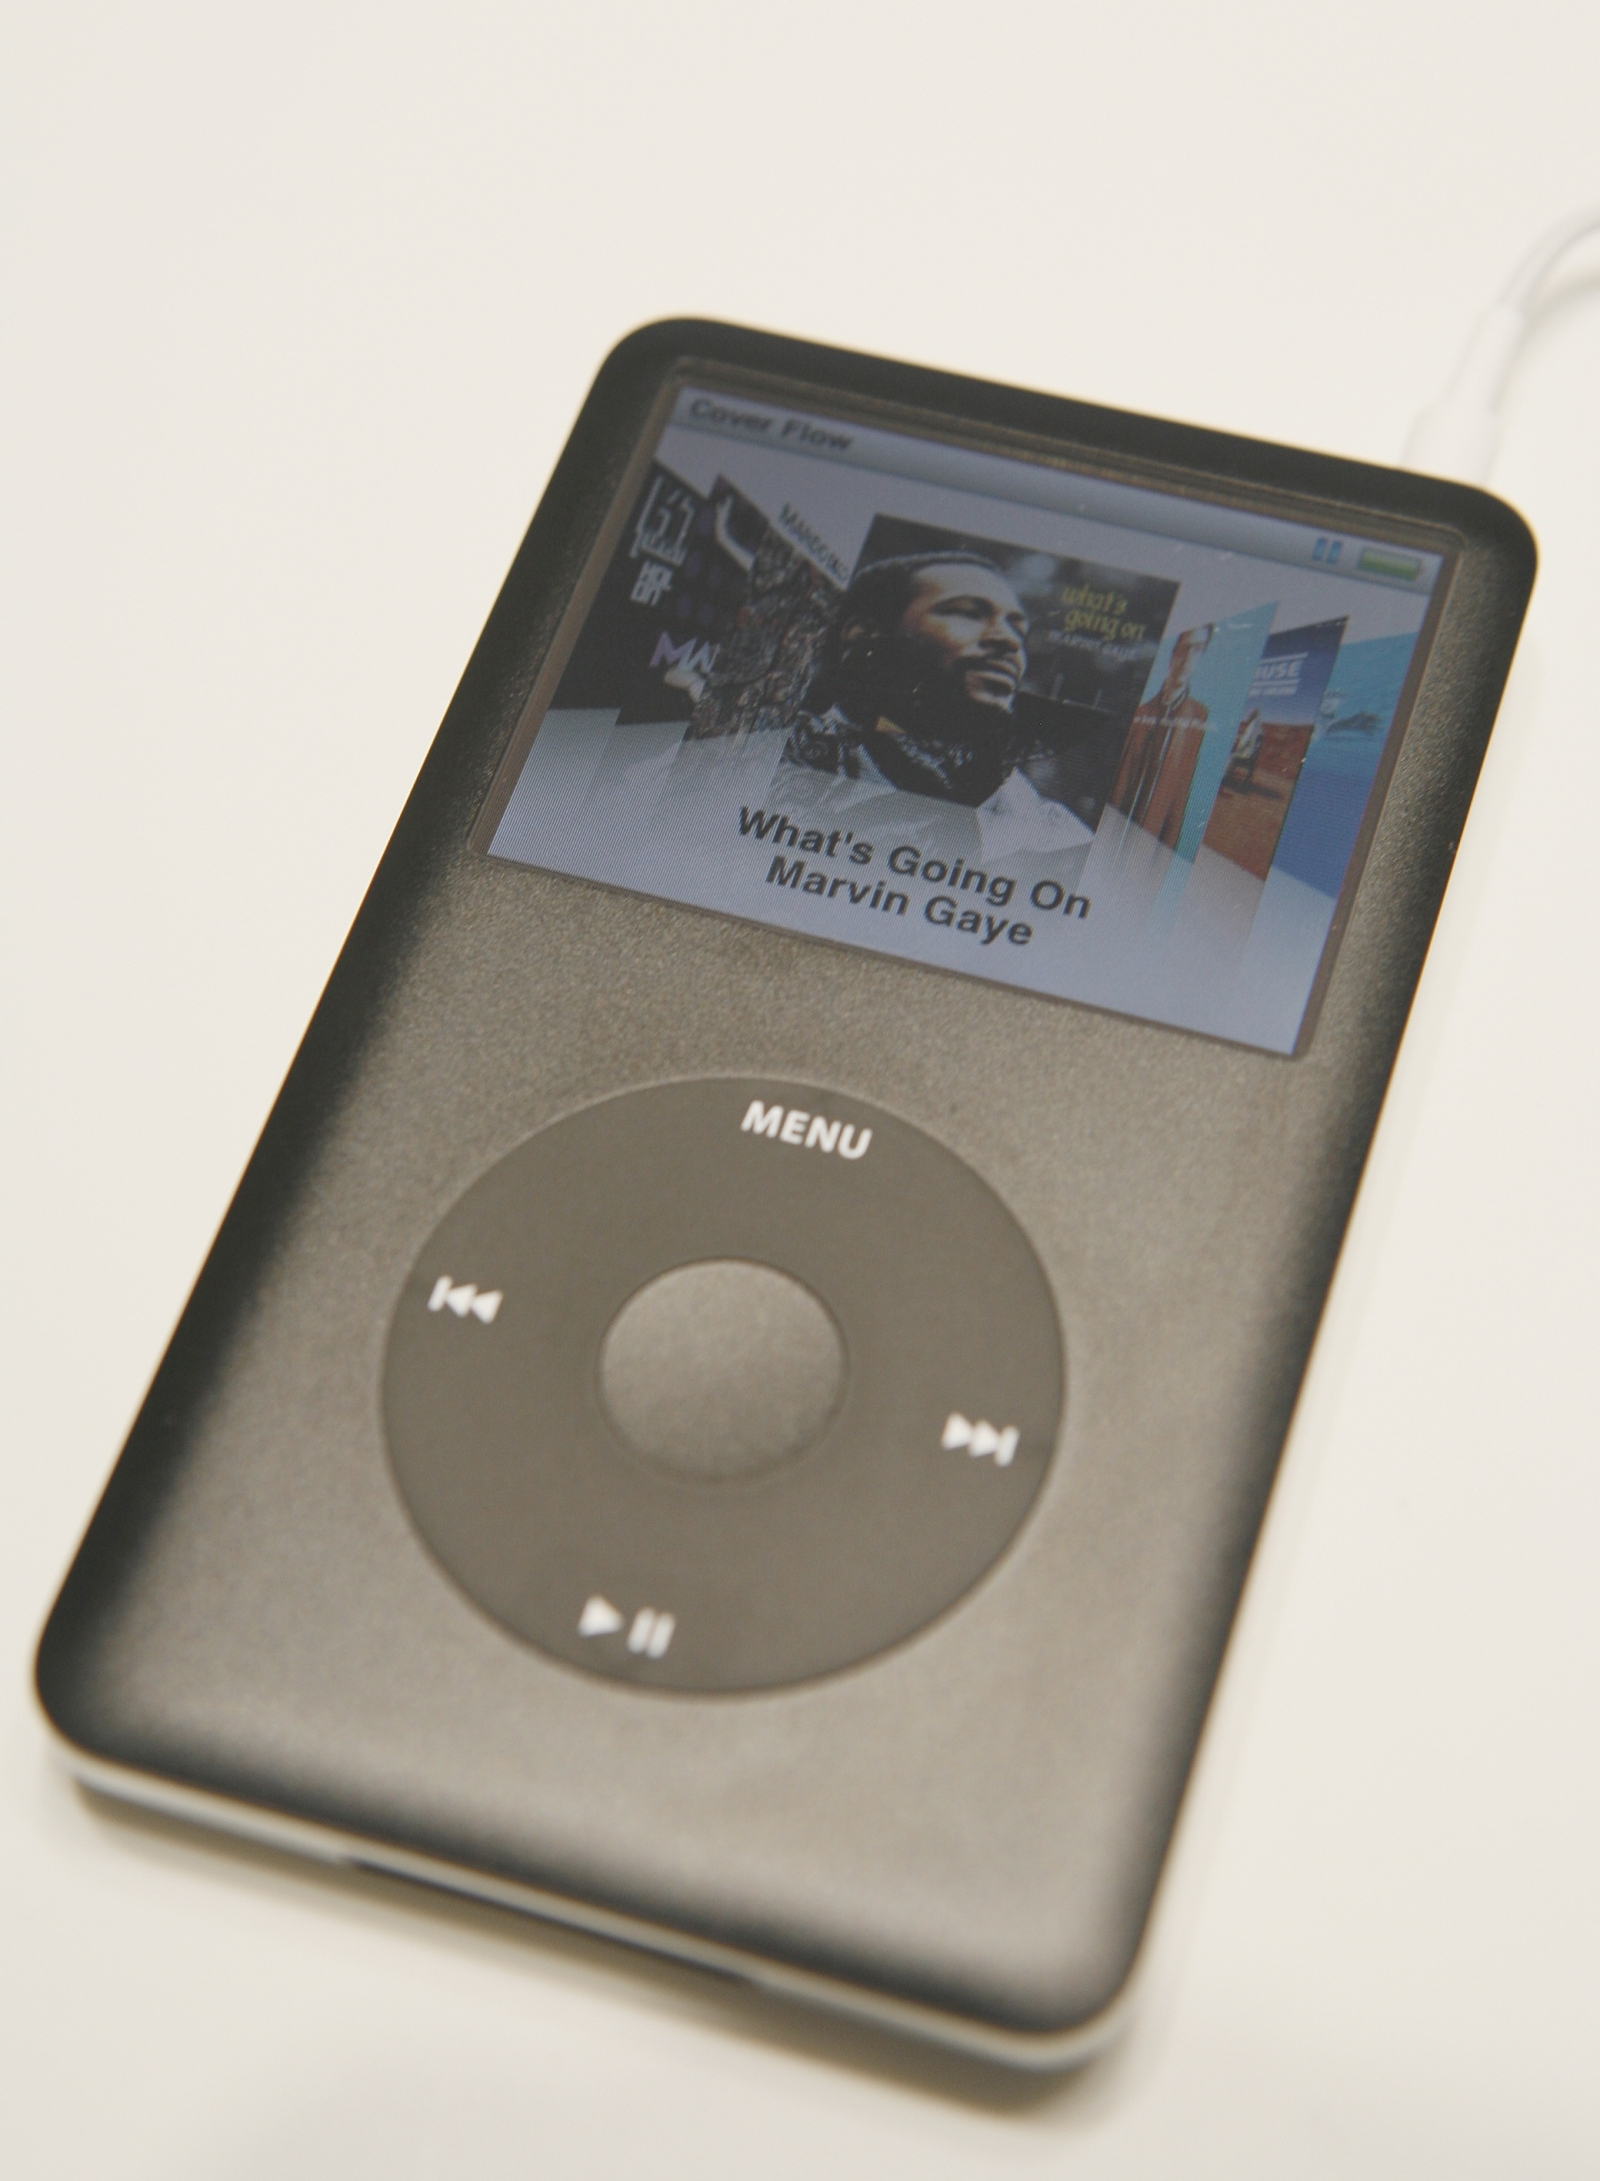 apple ipod classic phased out a look back at the popular. Black Bedroom Furniture Sets. Home Design Ideas